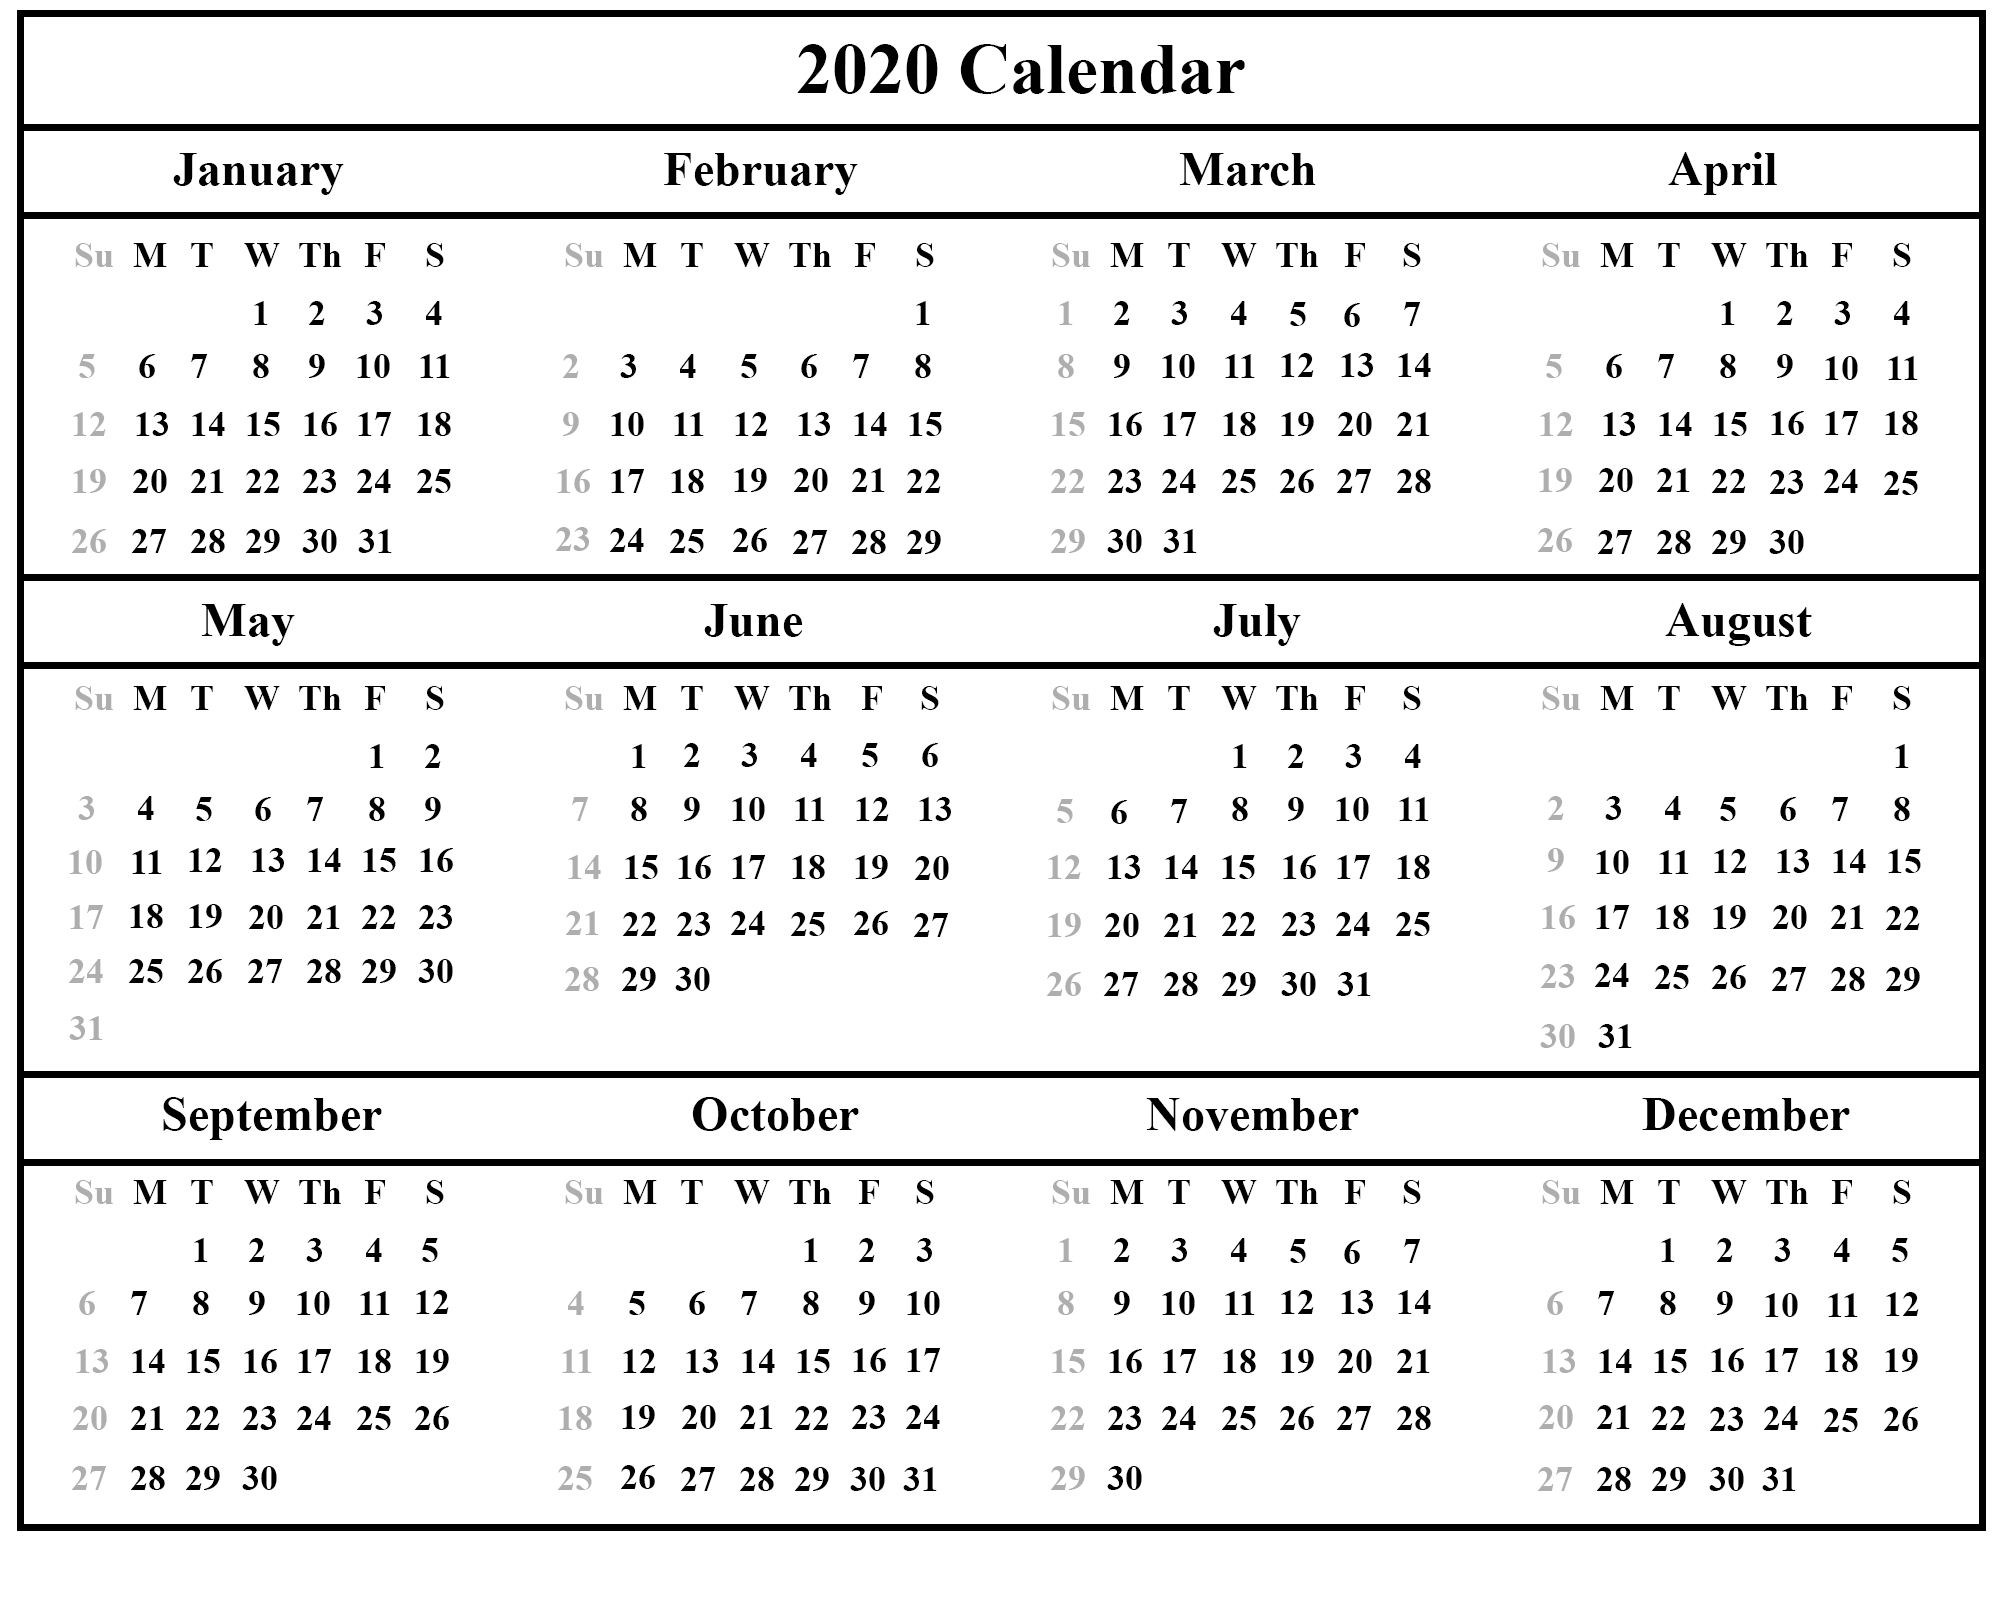 2020 Calendar With Holidays In Word - Colona.rsd7 Perky Printable Monthly Calendar 2020 Australia With School Holidays